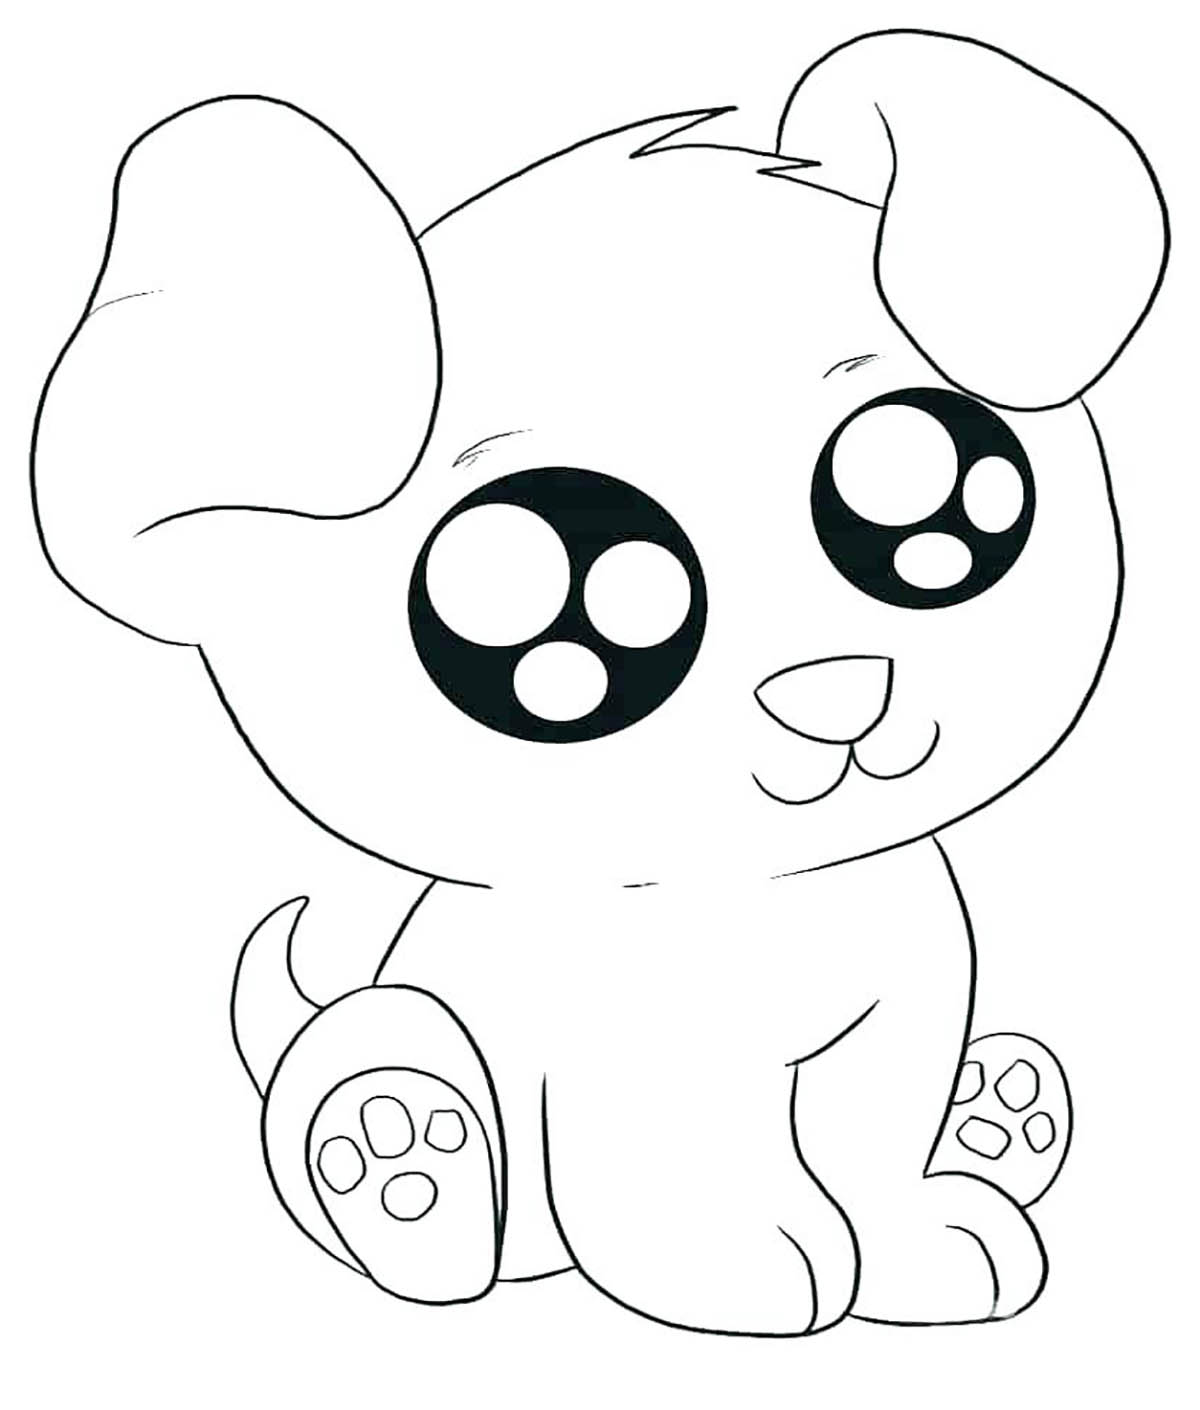 Dogs To Print Kawai Dog Dogs Kids Coloring Pages